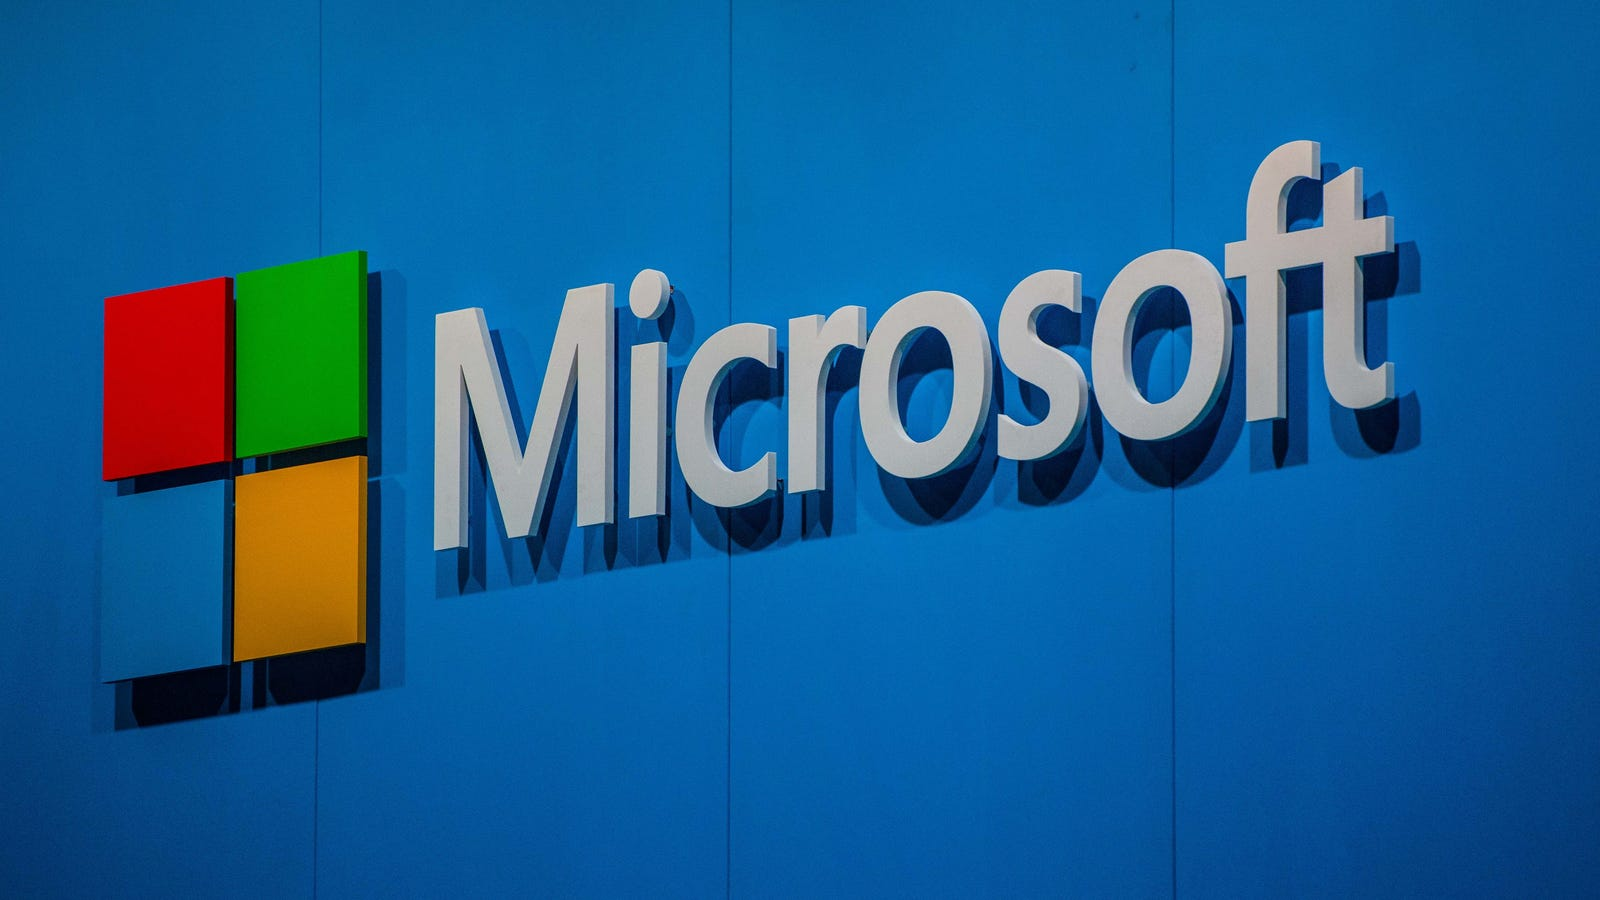 Microsoft Reportedly Set to Acquire GitHub, Deal Could